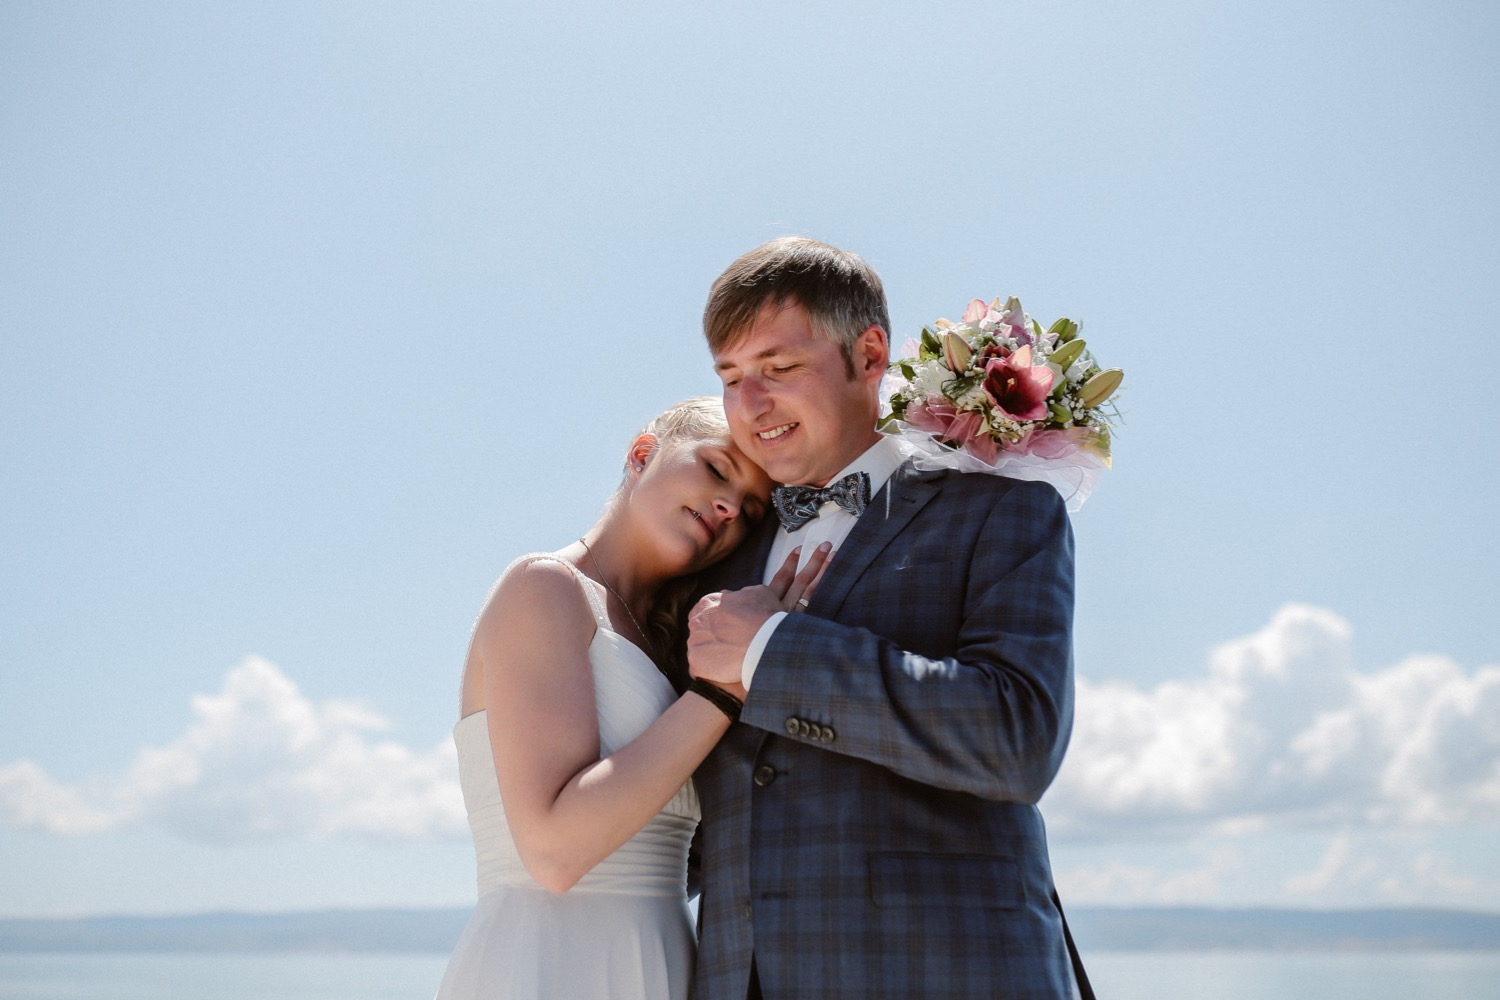 Croatia beach elopement hilke thomas love and ventures photography 40 | Croatia Elopement Photographer and Videographer